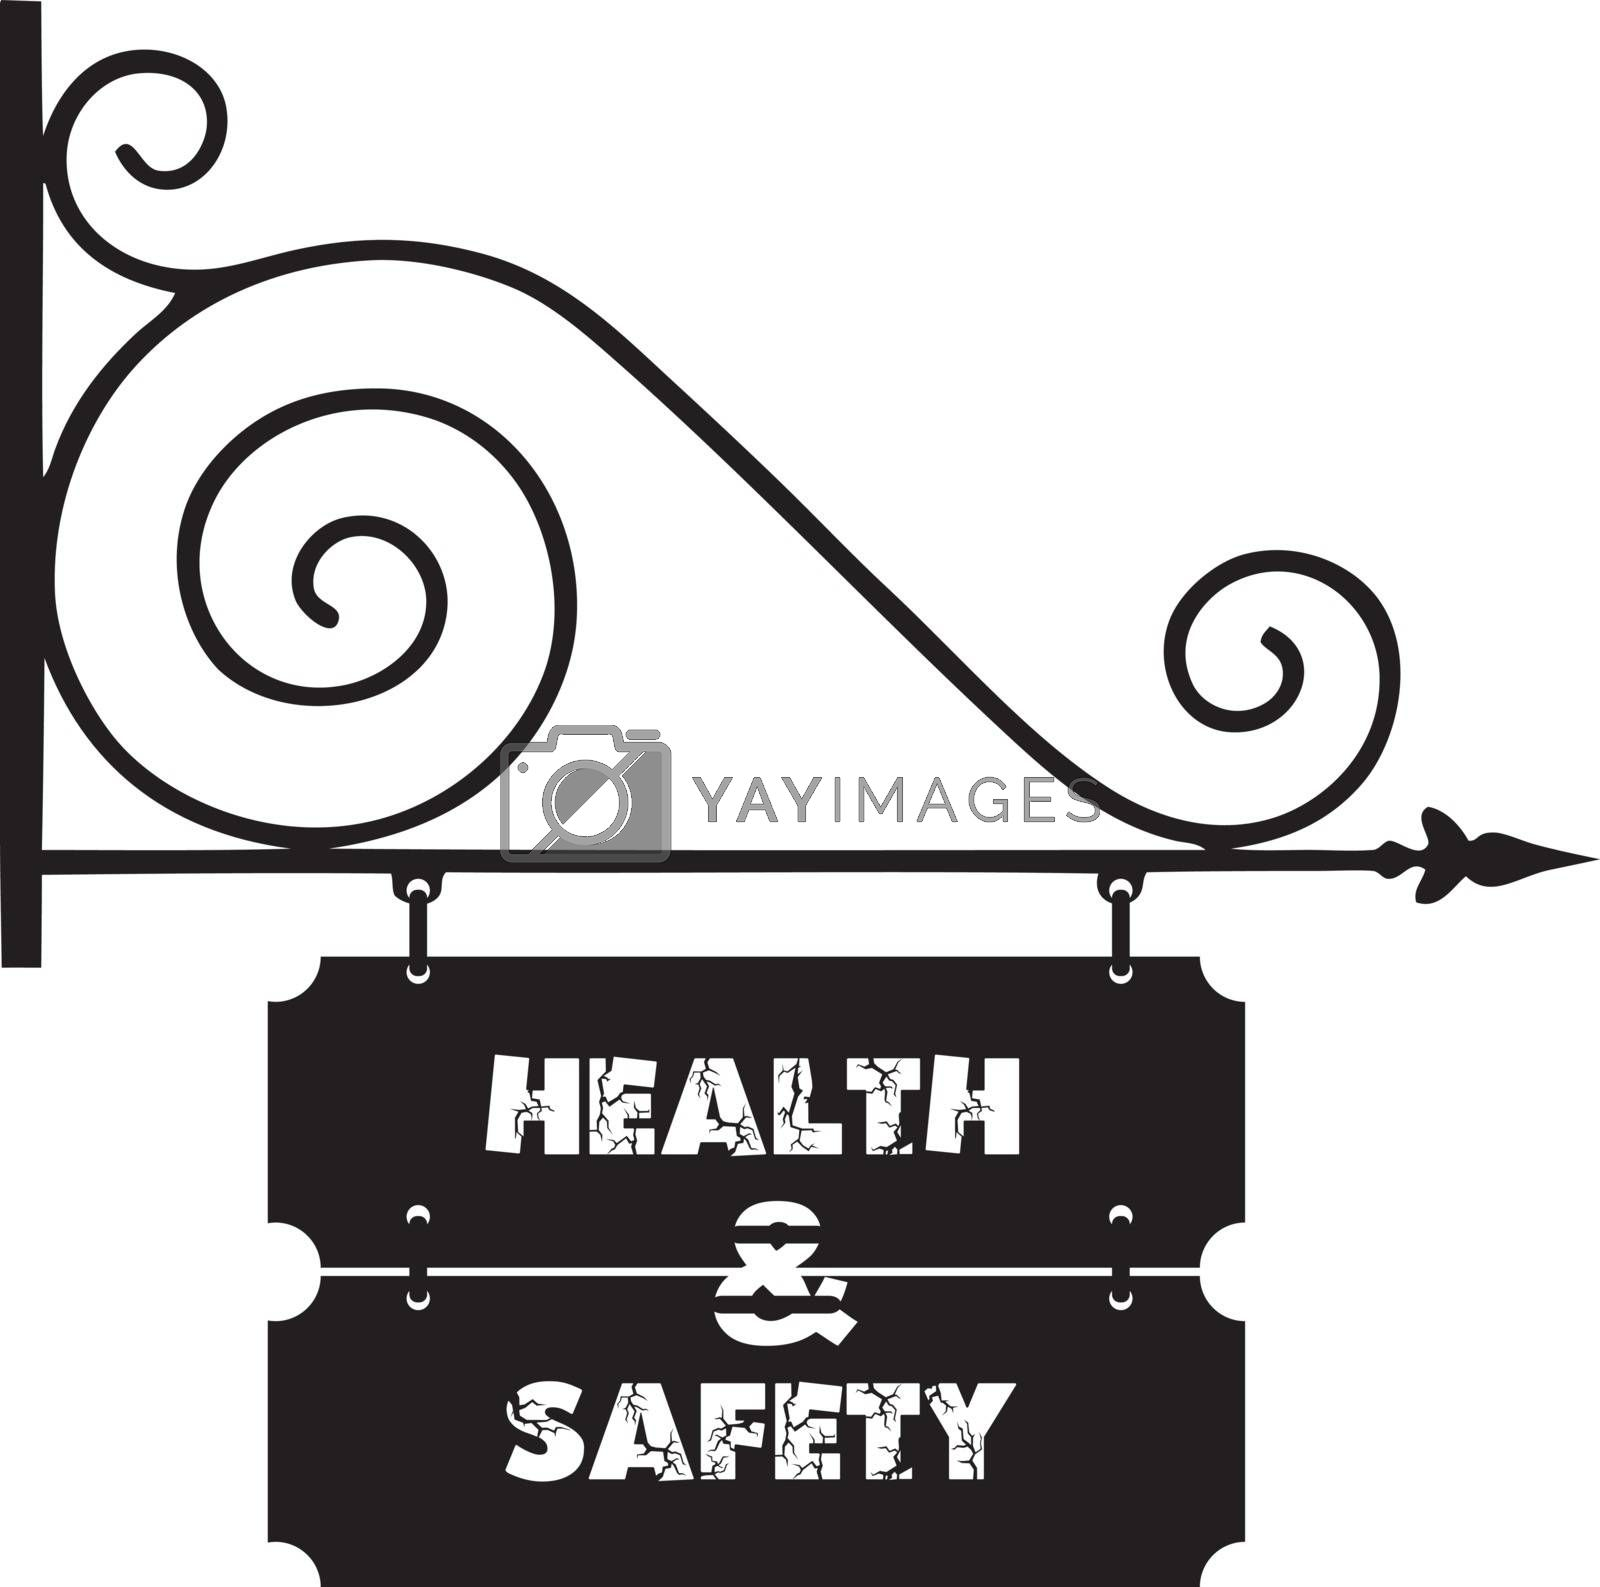 Royalty free image of Street signs on building health and safety by VIPDesignUSA